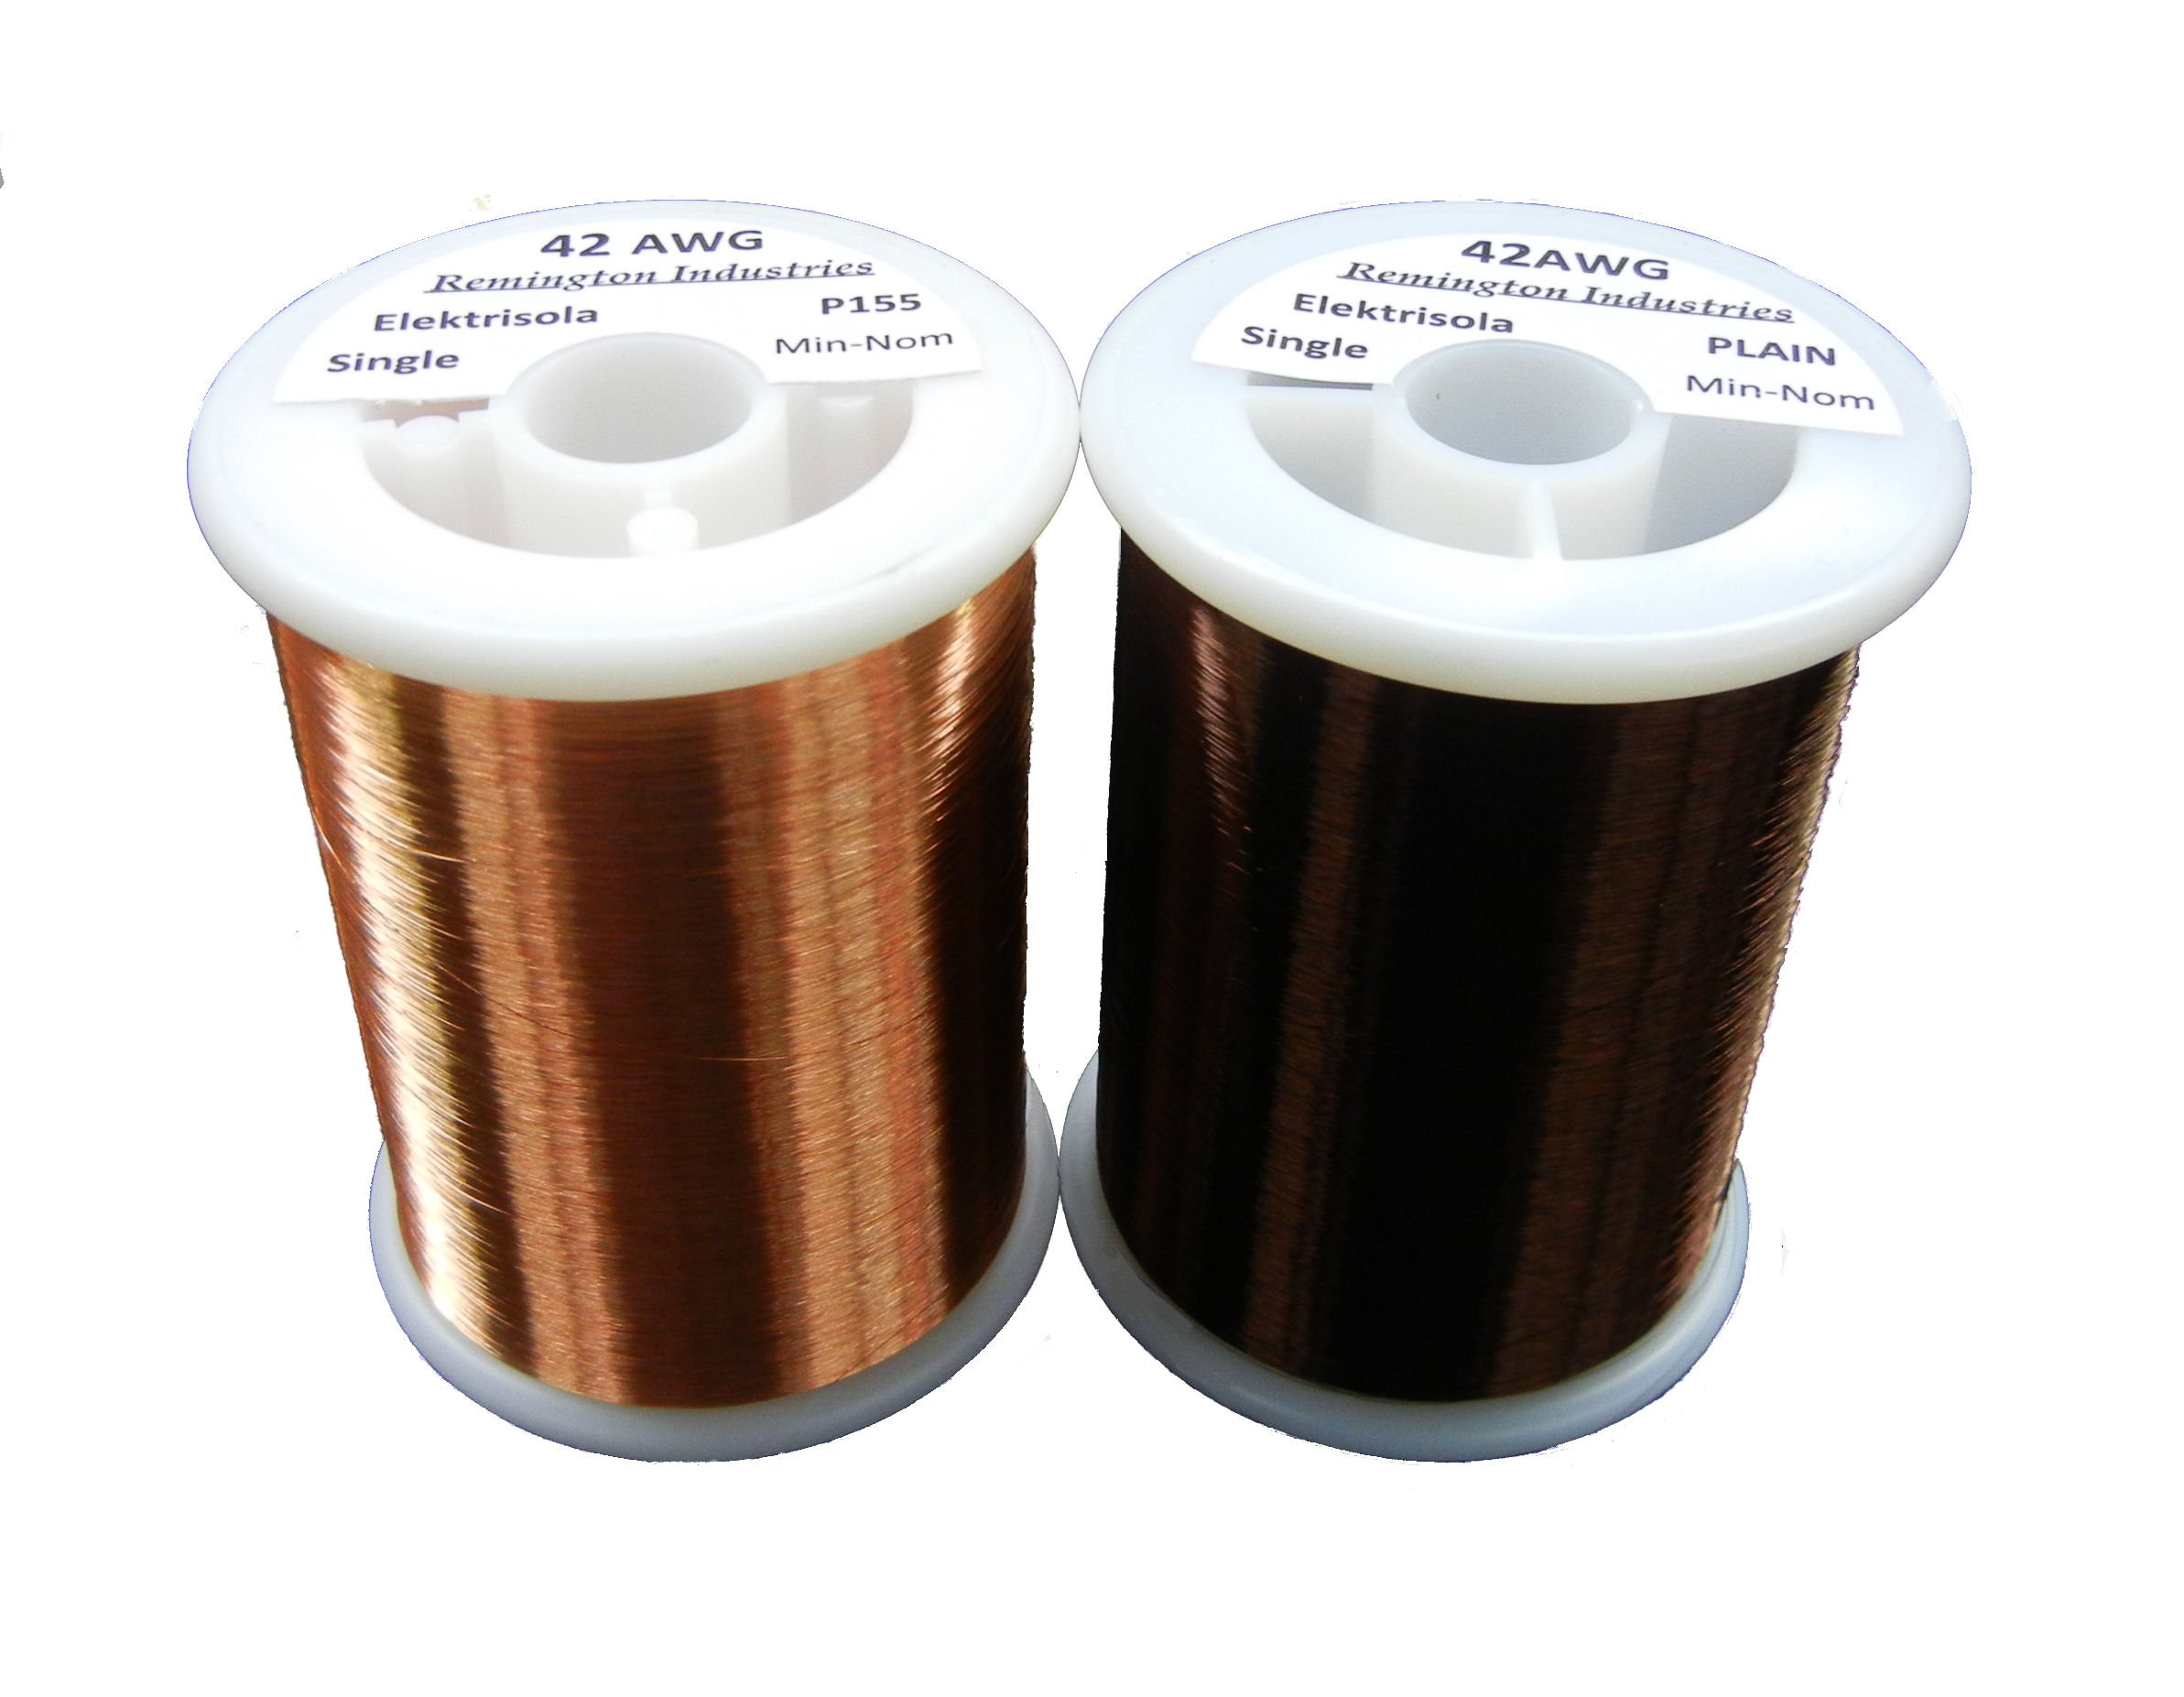 Pickup Winders Kit #3 - 42 AWG & 42 AWG Plain Enamel Copper Magnet Wire - 1.0 lbs